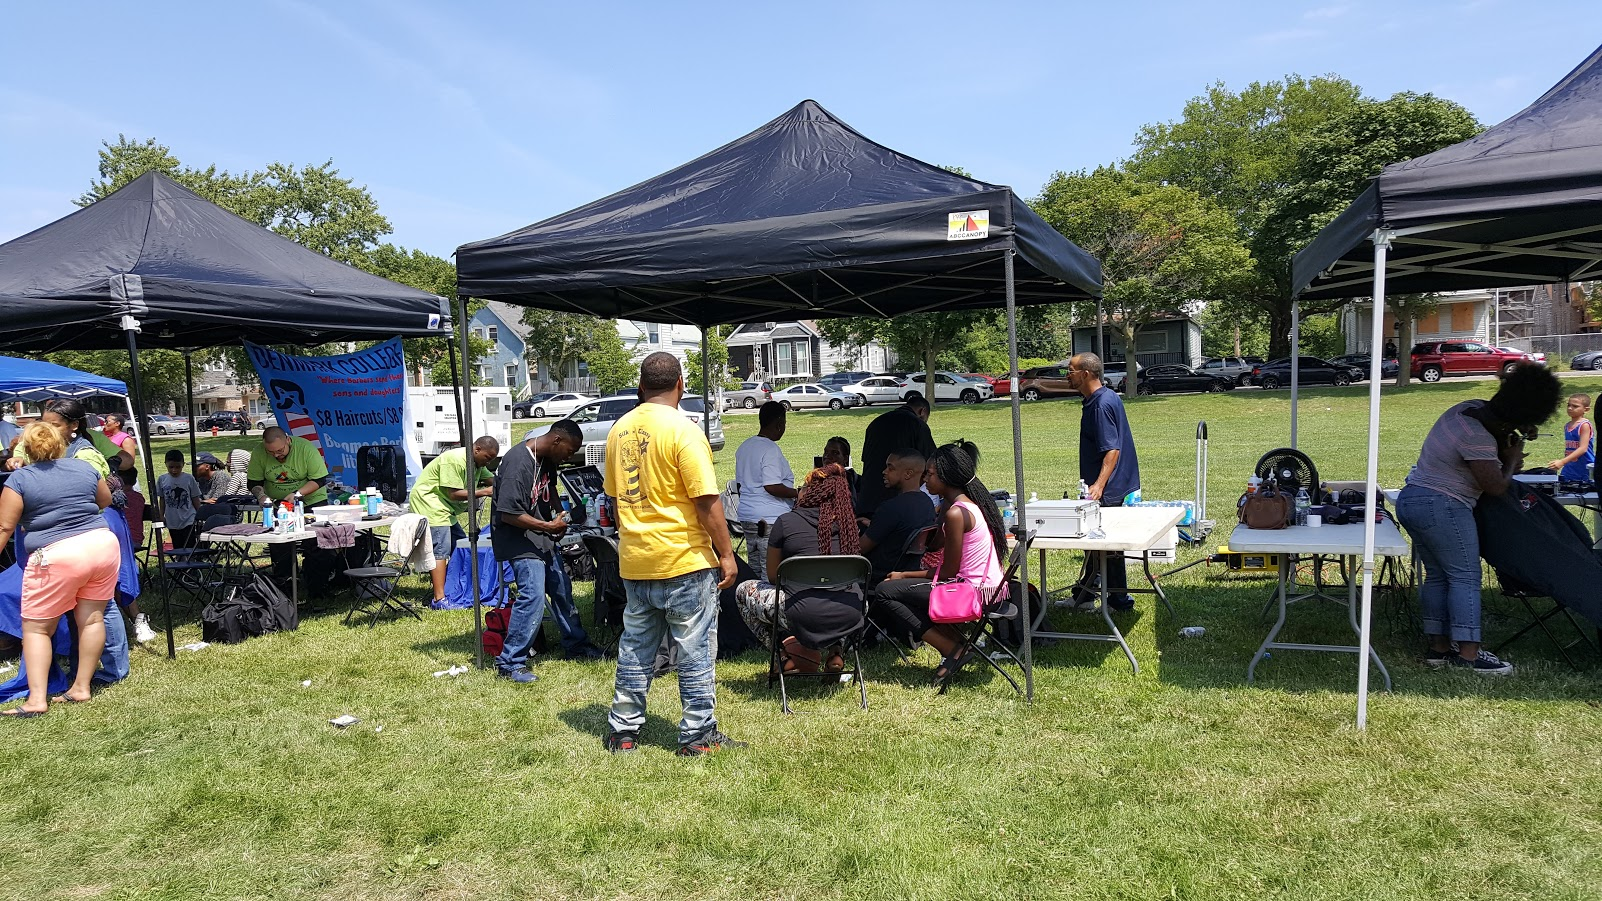 2017 Brotherhood of Barbers event, Ogden Park, Chicago